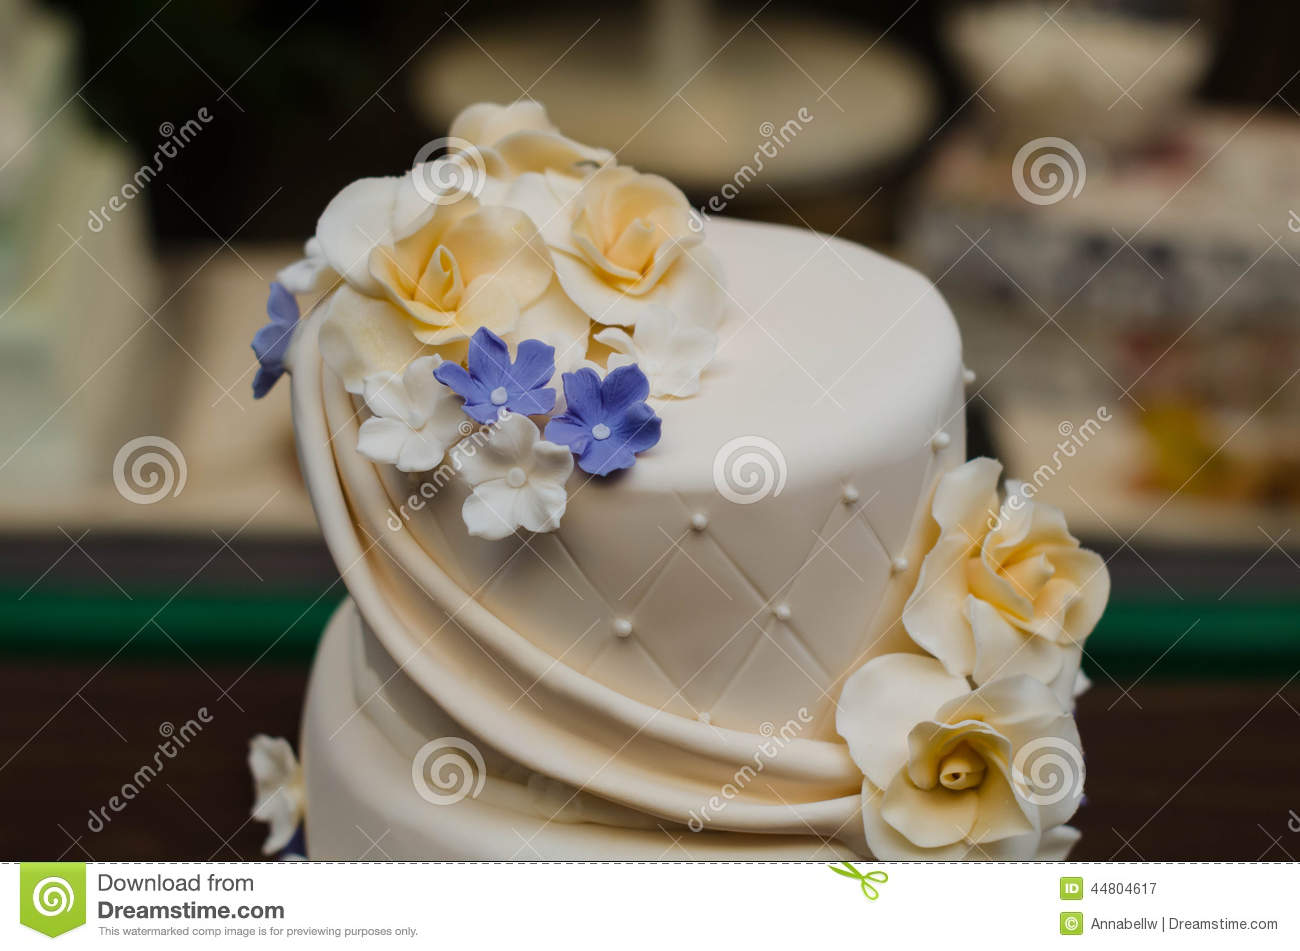 Close up wedding cake with yellow and purple flowers stock image close up wedding cake with yellow and purple flowers mightylinksfo